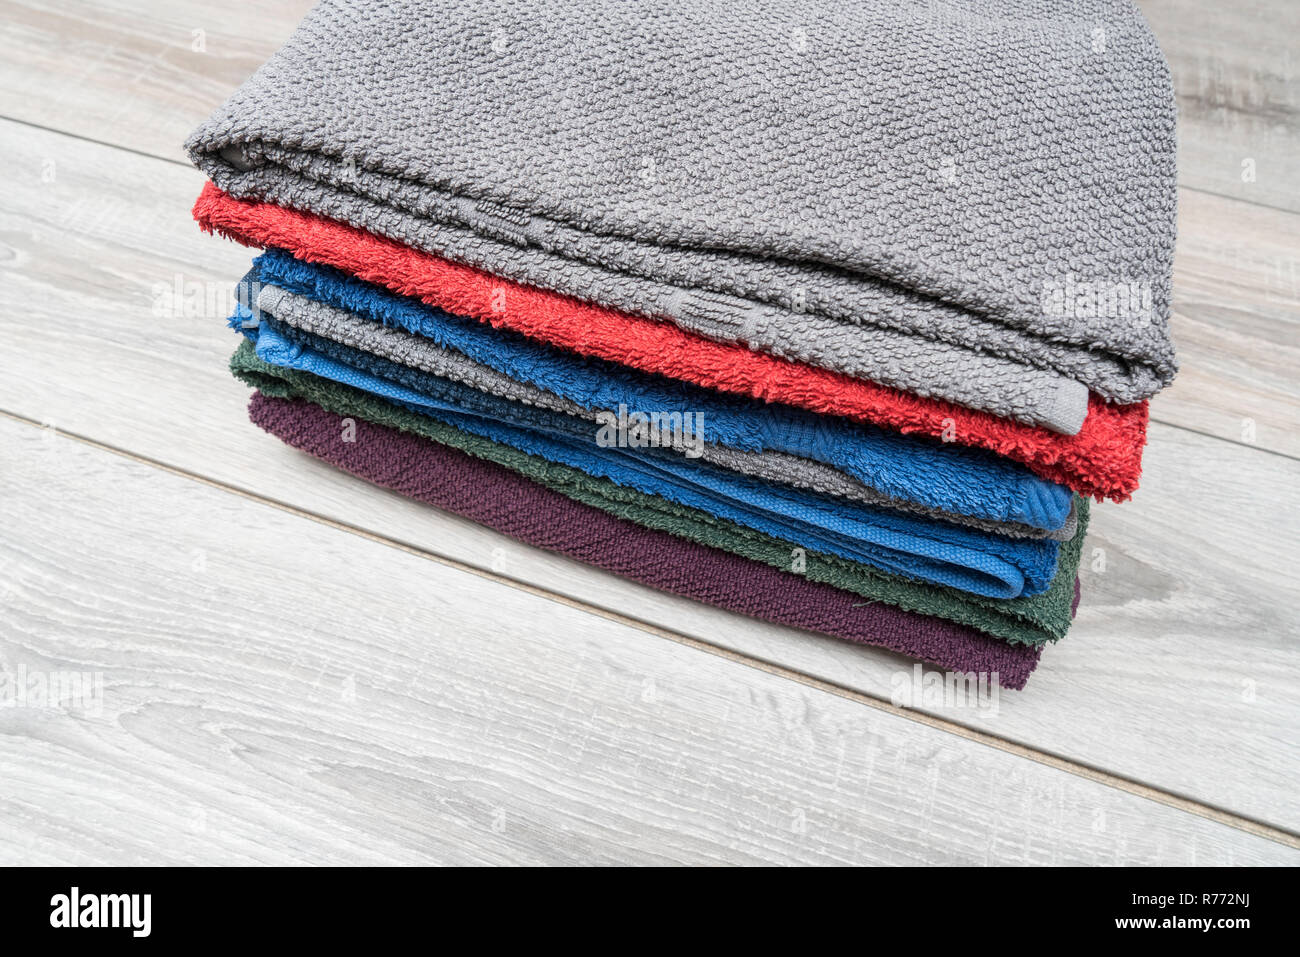 clean towels Stock Photo: 228193214 - Alamy